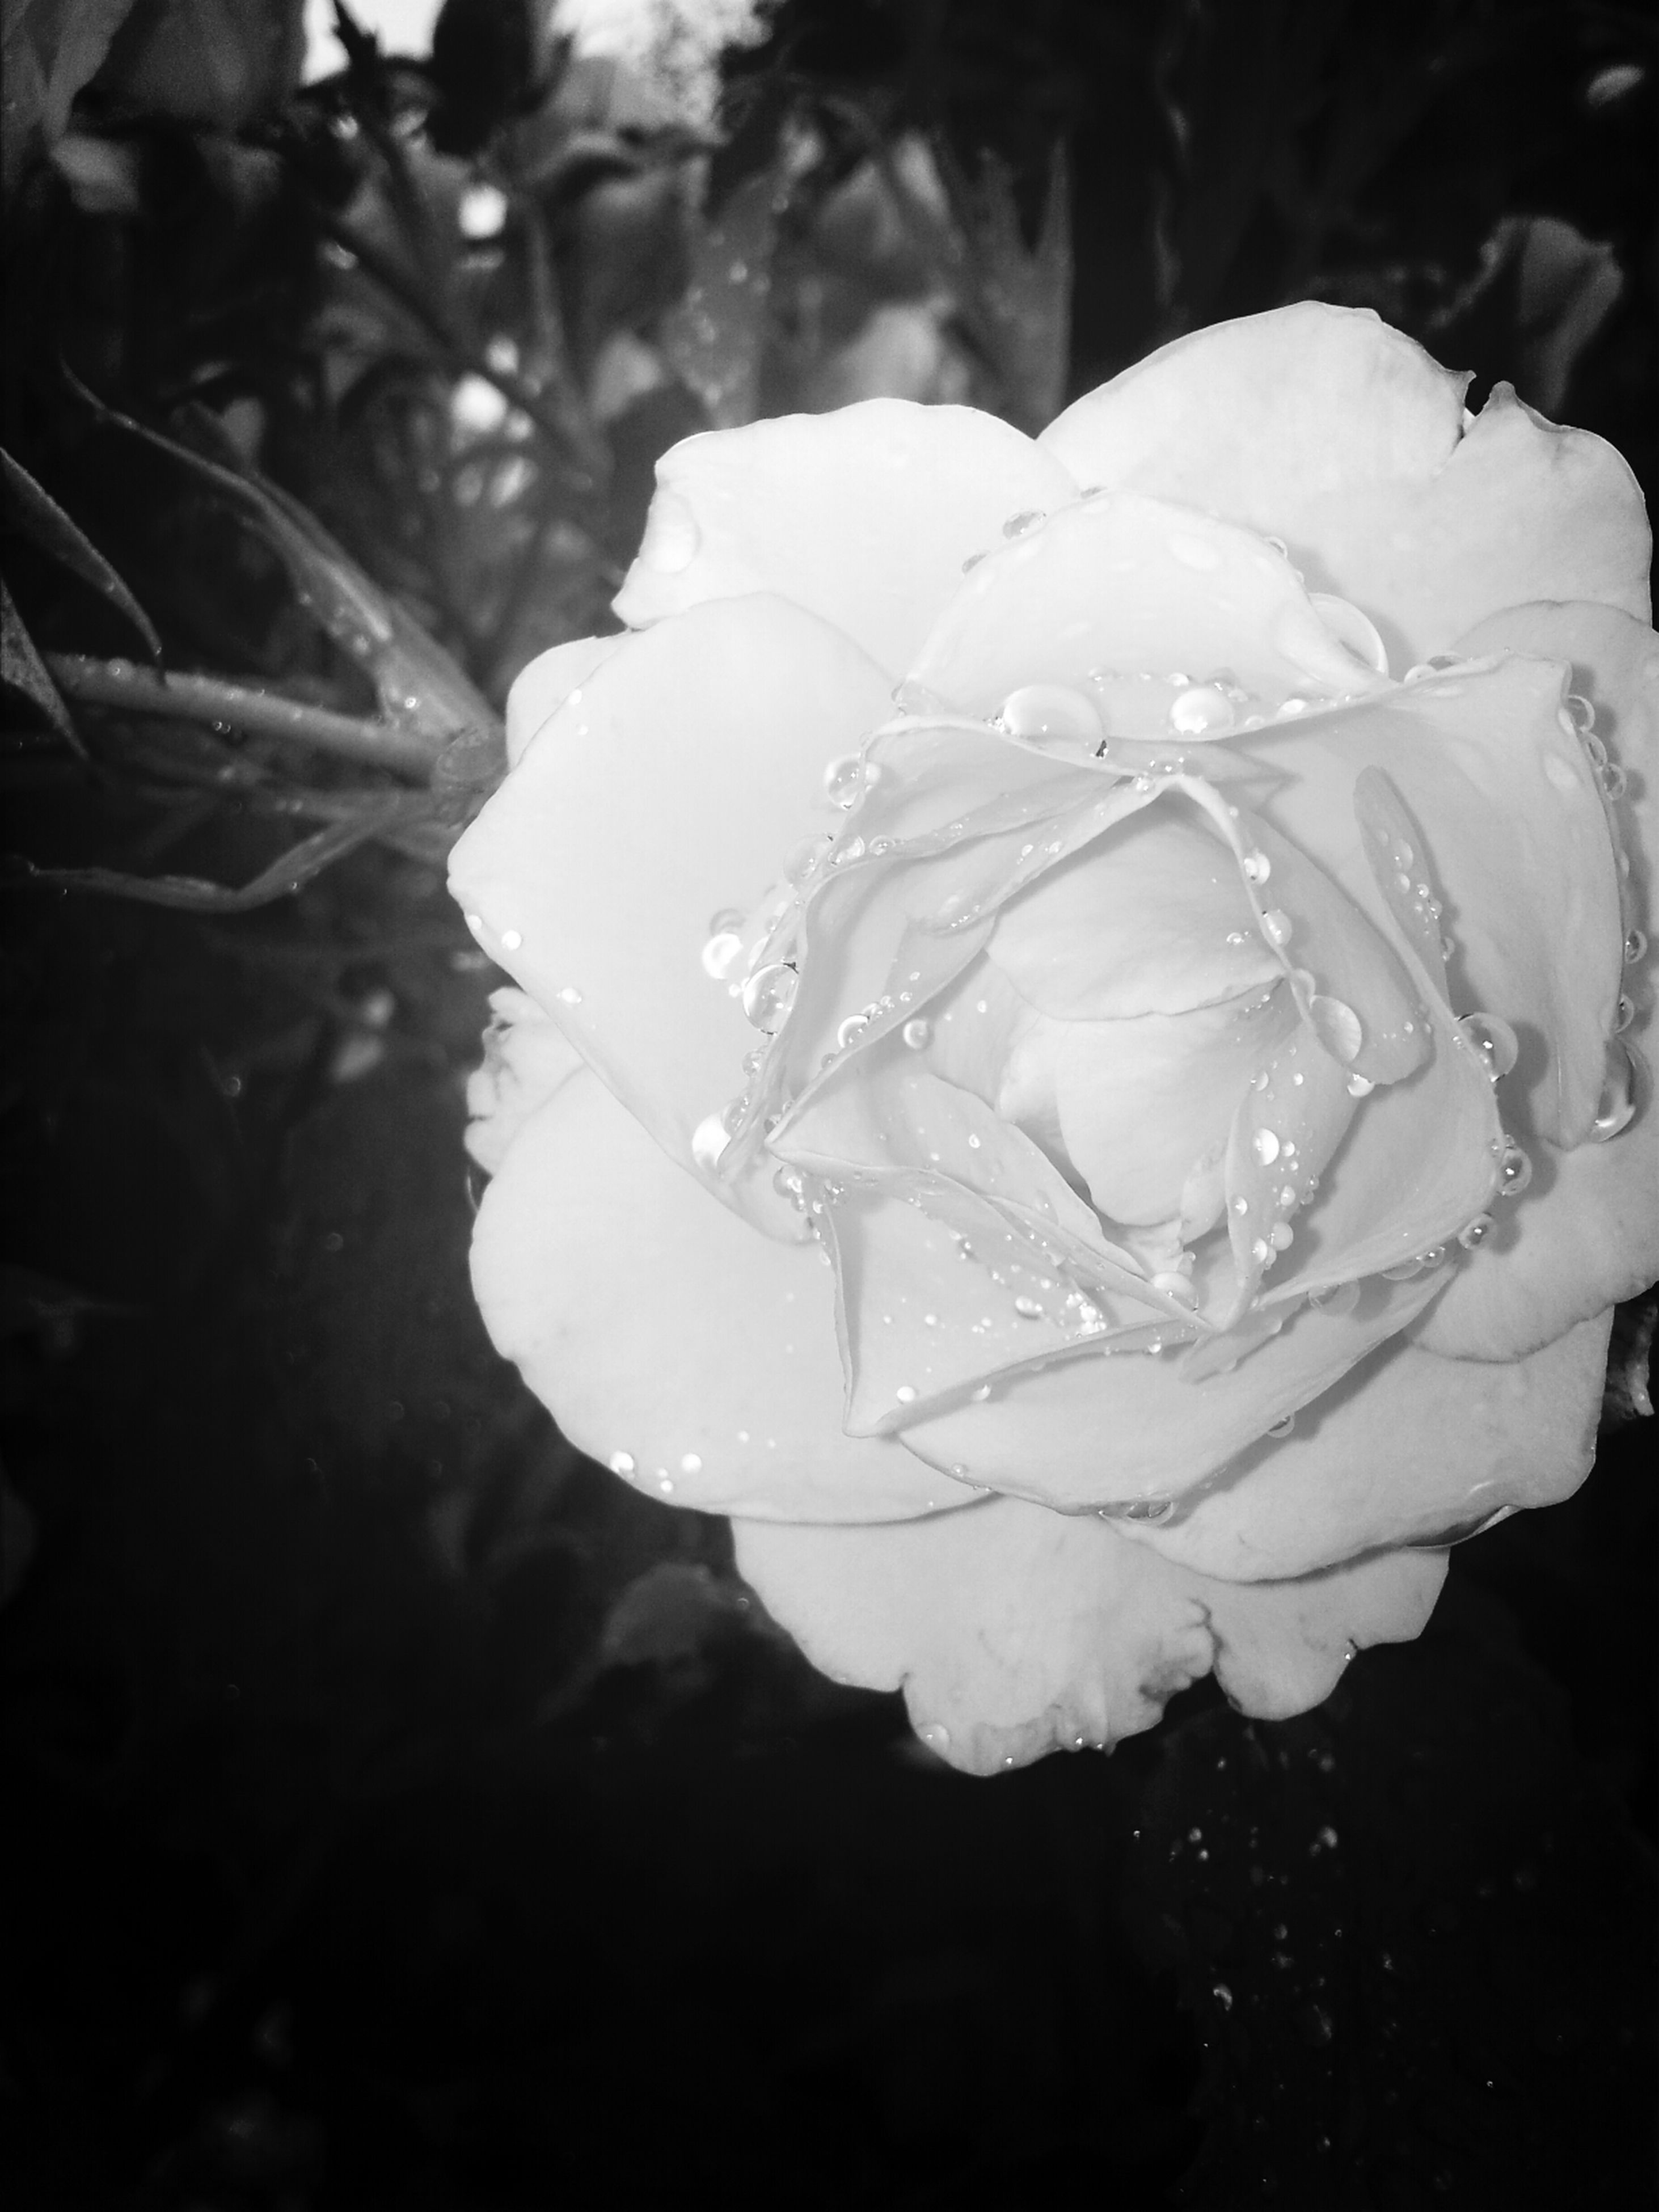 petal, flower, fragility, freshness, flower head, rose - flower, close-up, drop, single flower, beauty in nature, water, wet, growth, nature, focus on foreground, white color, blooming, season, single rose, rose